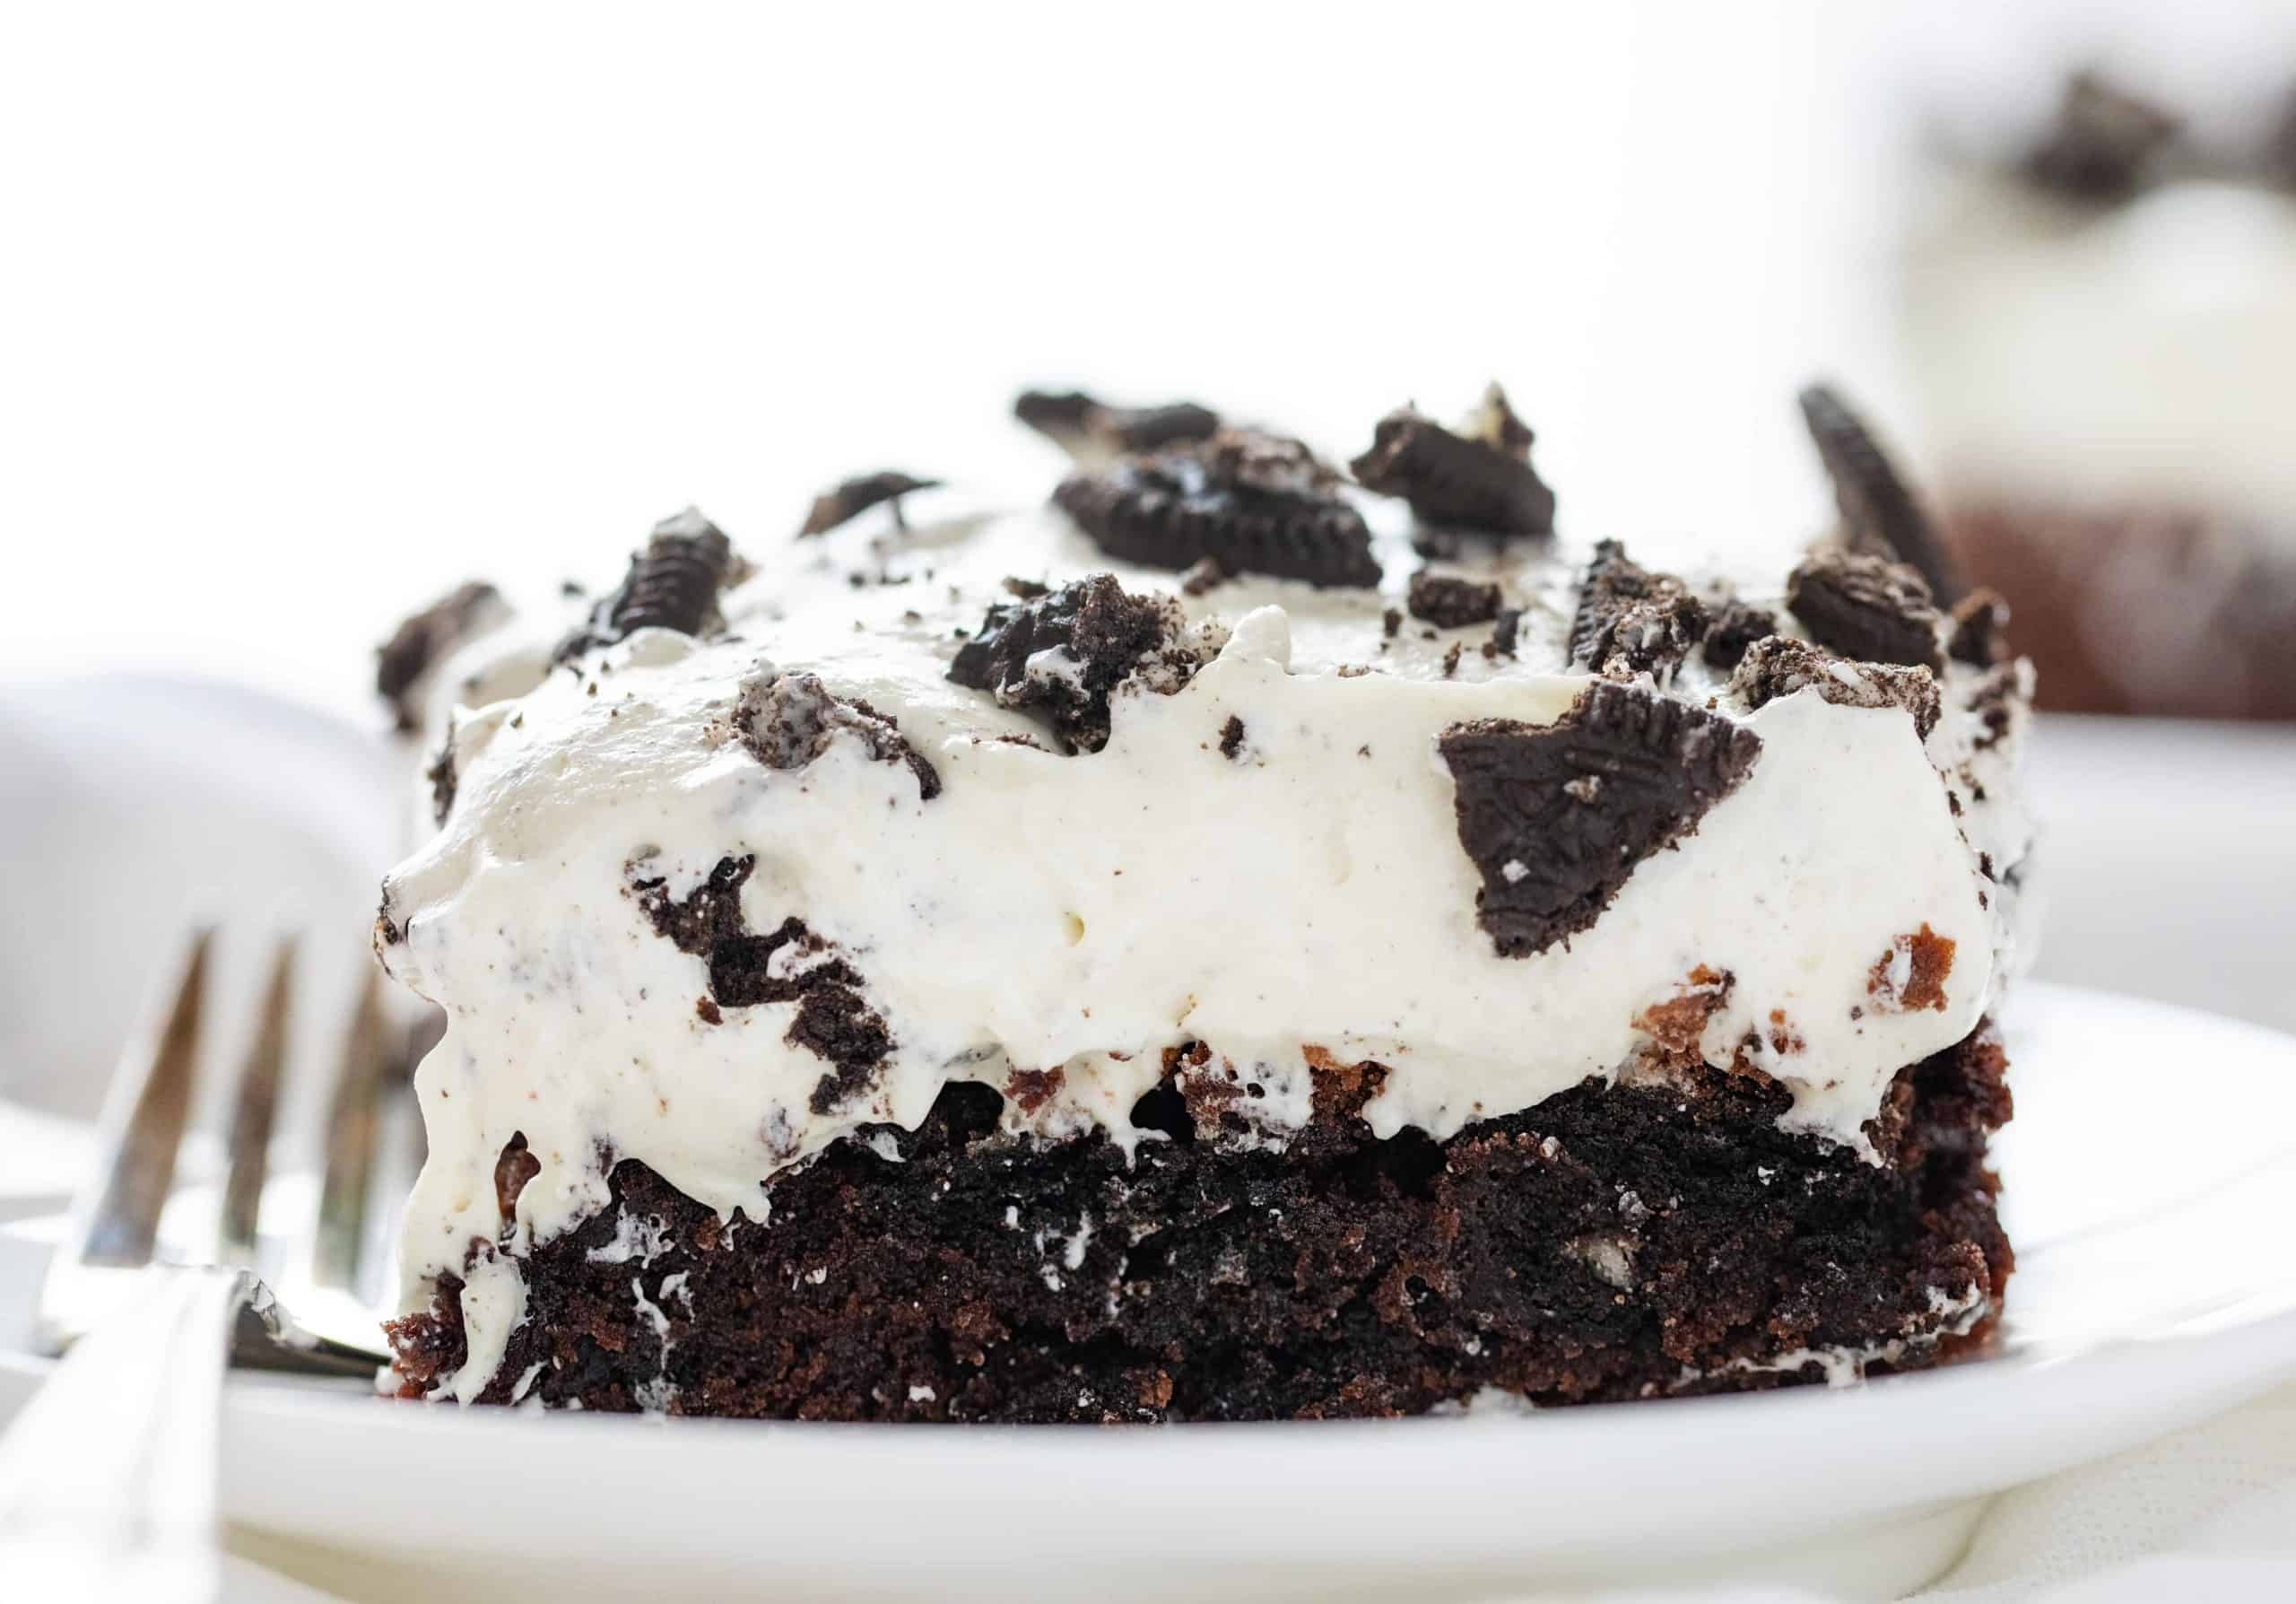 This Oreo Brownie Dessert is a GAME CHANGER! Packed with Oreo and tonz of flavor, you are going to love it! #brownies #oreobrownies #oreobrowniedessert #dessert #baking #iambaker #recipes